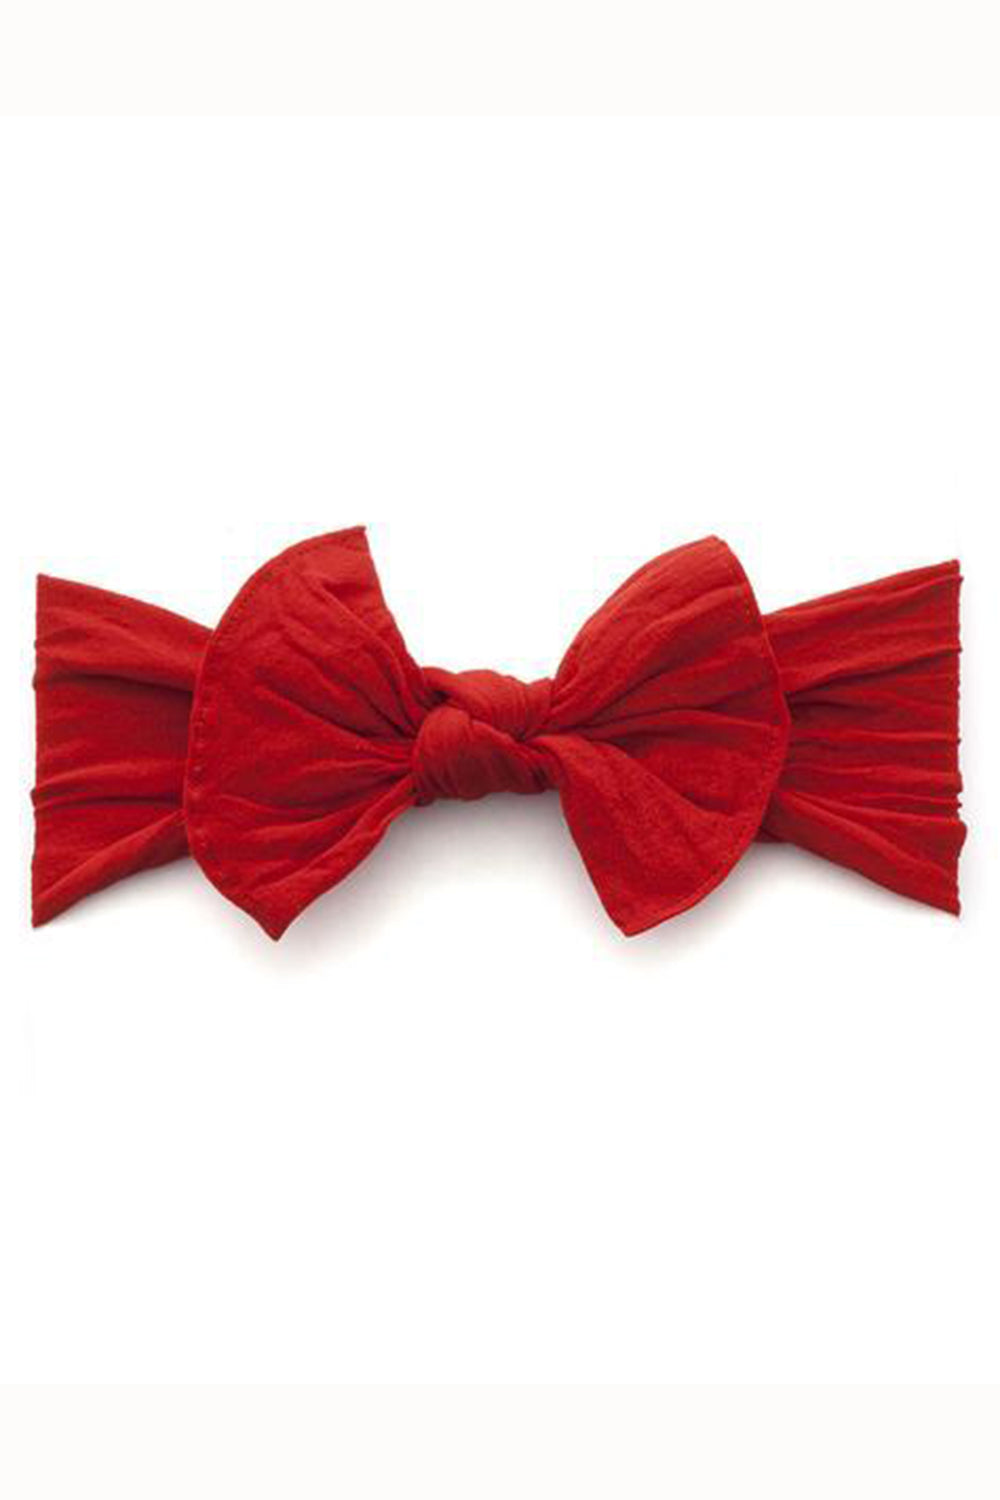 Baby Bow - Cherry Red